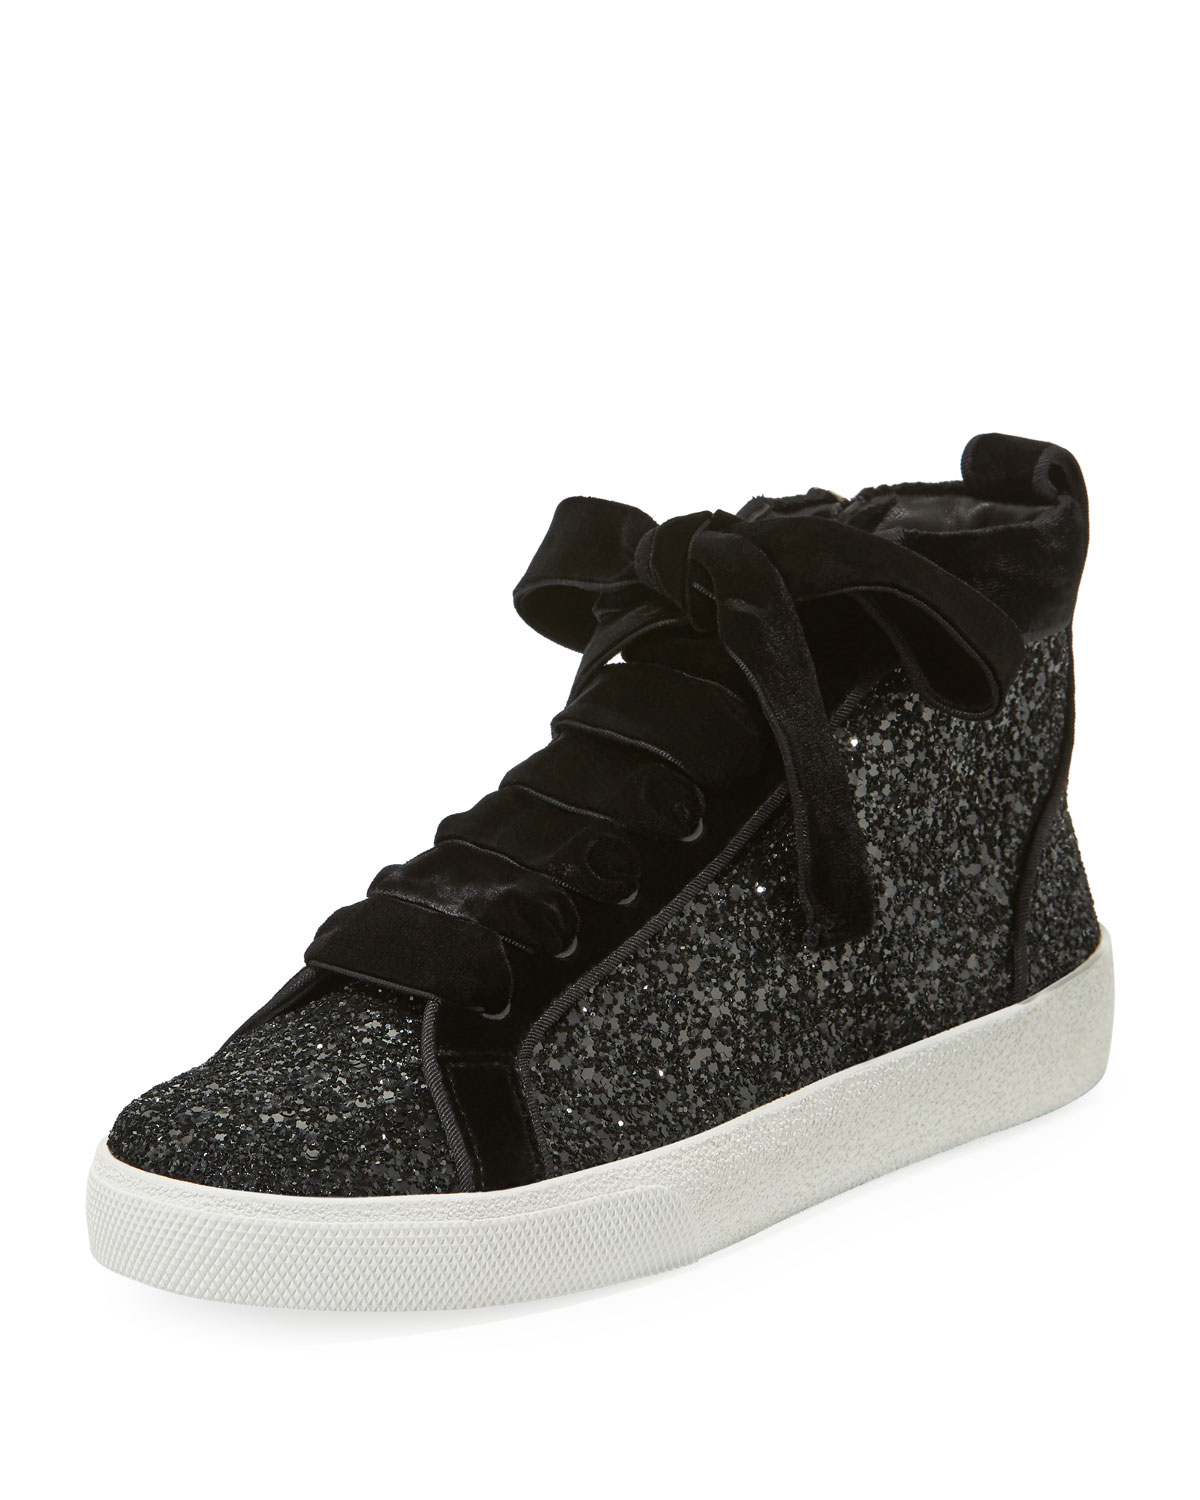 3b79739fc9f Alice + Olivia Camil Glitter and Velvet Mid-Top Sneakers